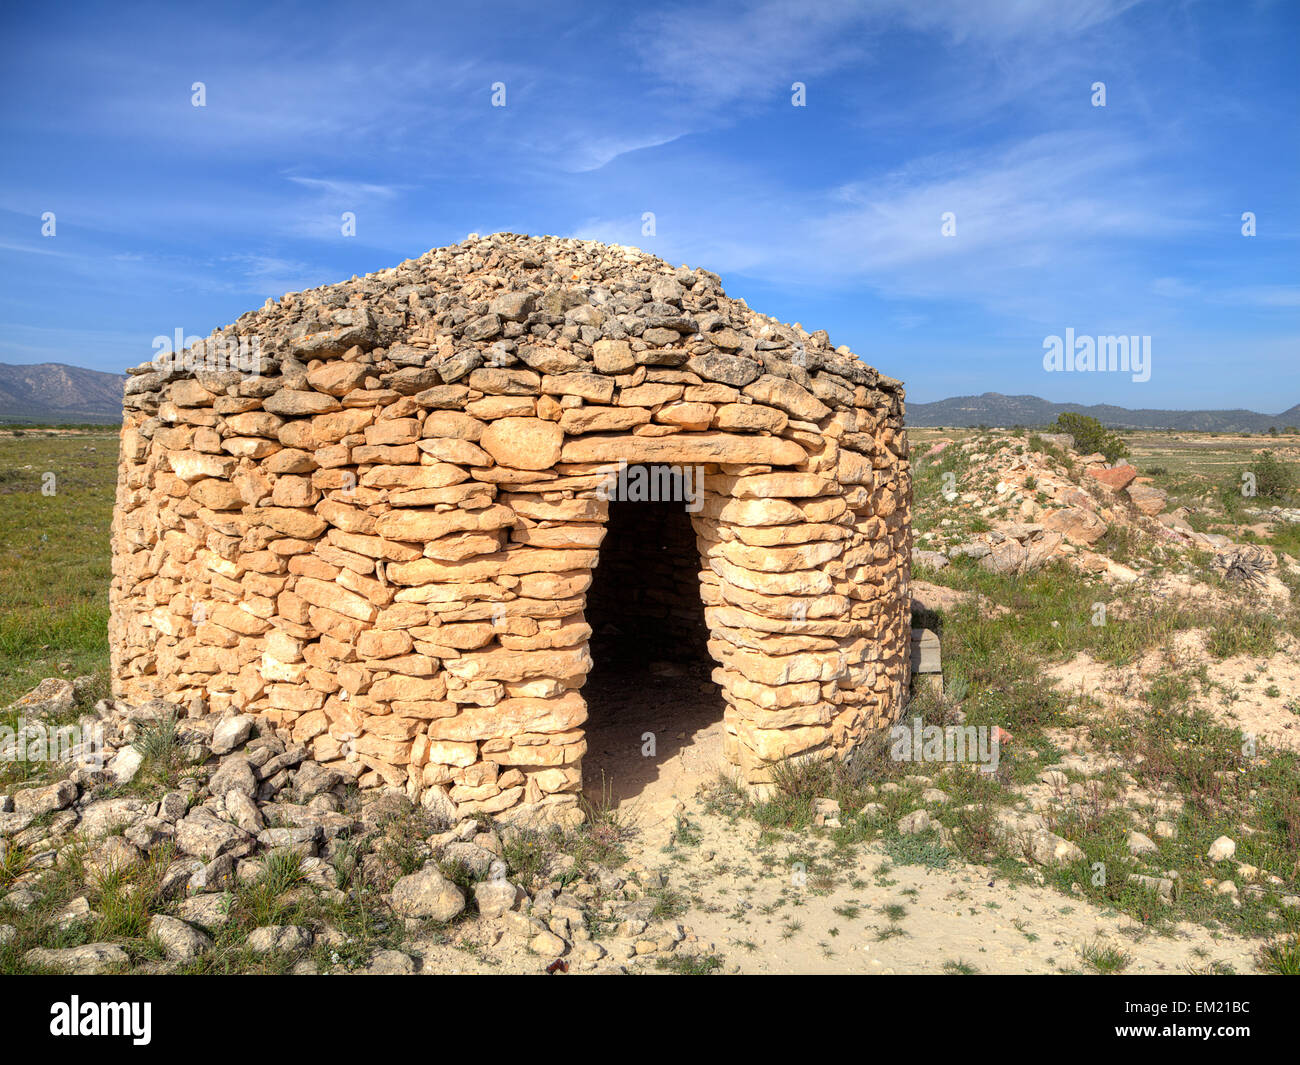 Stone built shepherd's hut in the Alicante region of Spain, used as shelter when moving goats and sheep between Stock Photo